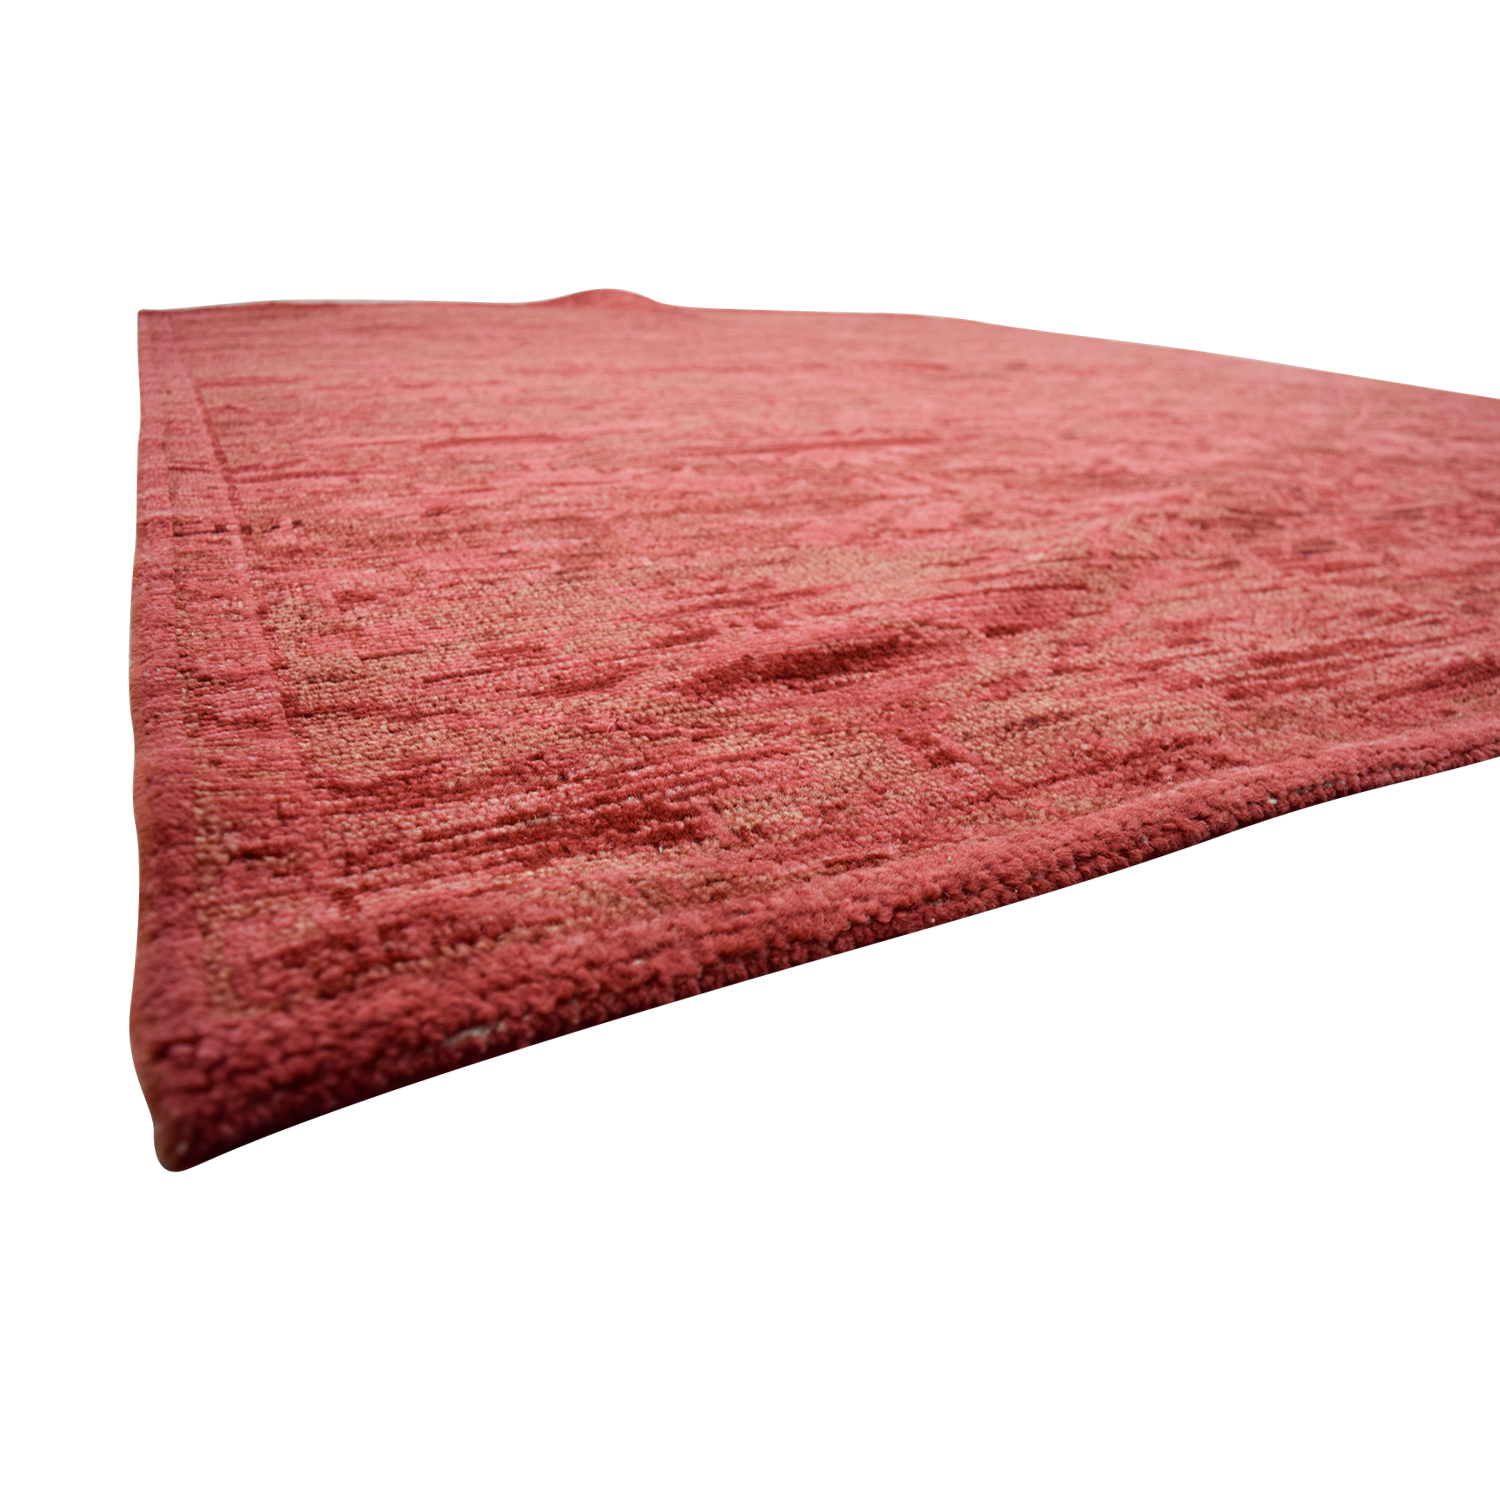 shop Obeetee Obeetee Hand Knotted Amira Paprika Wool Rug online